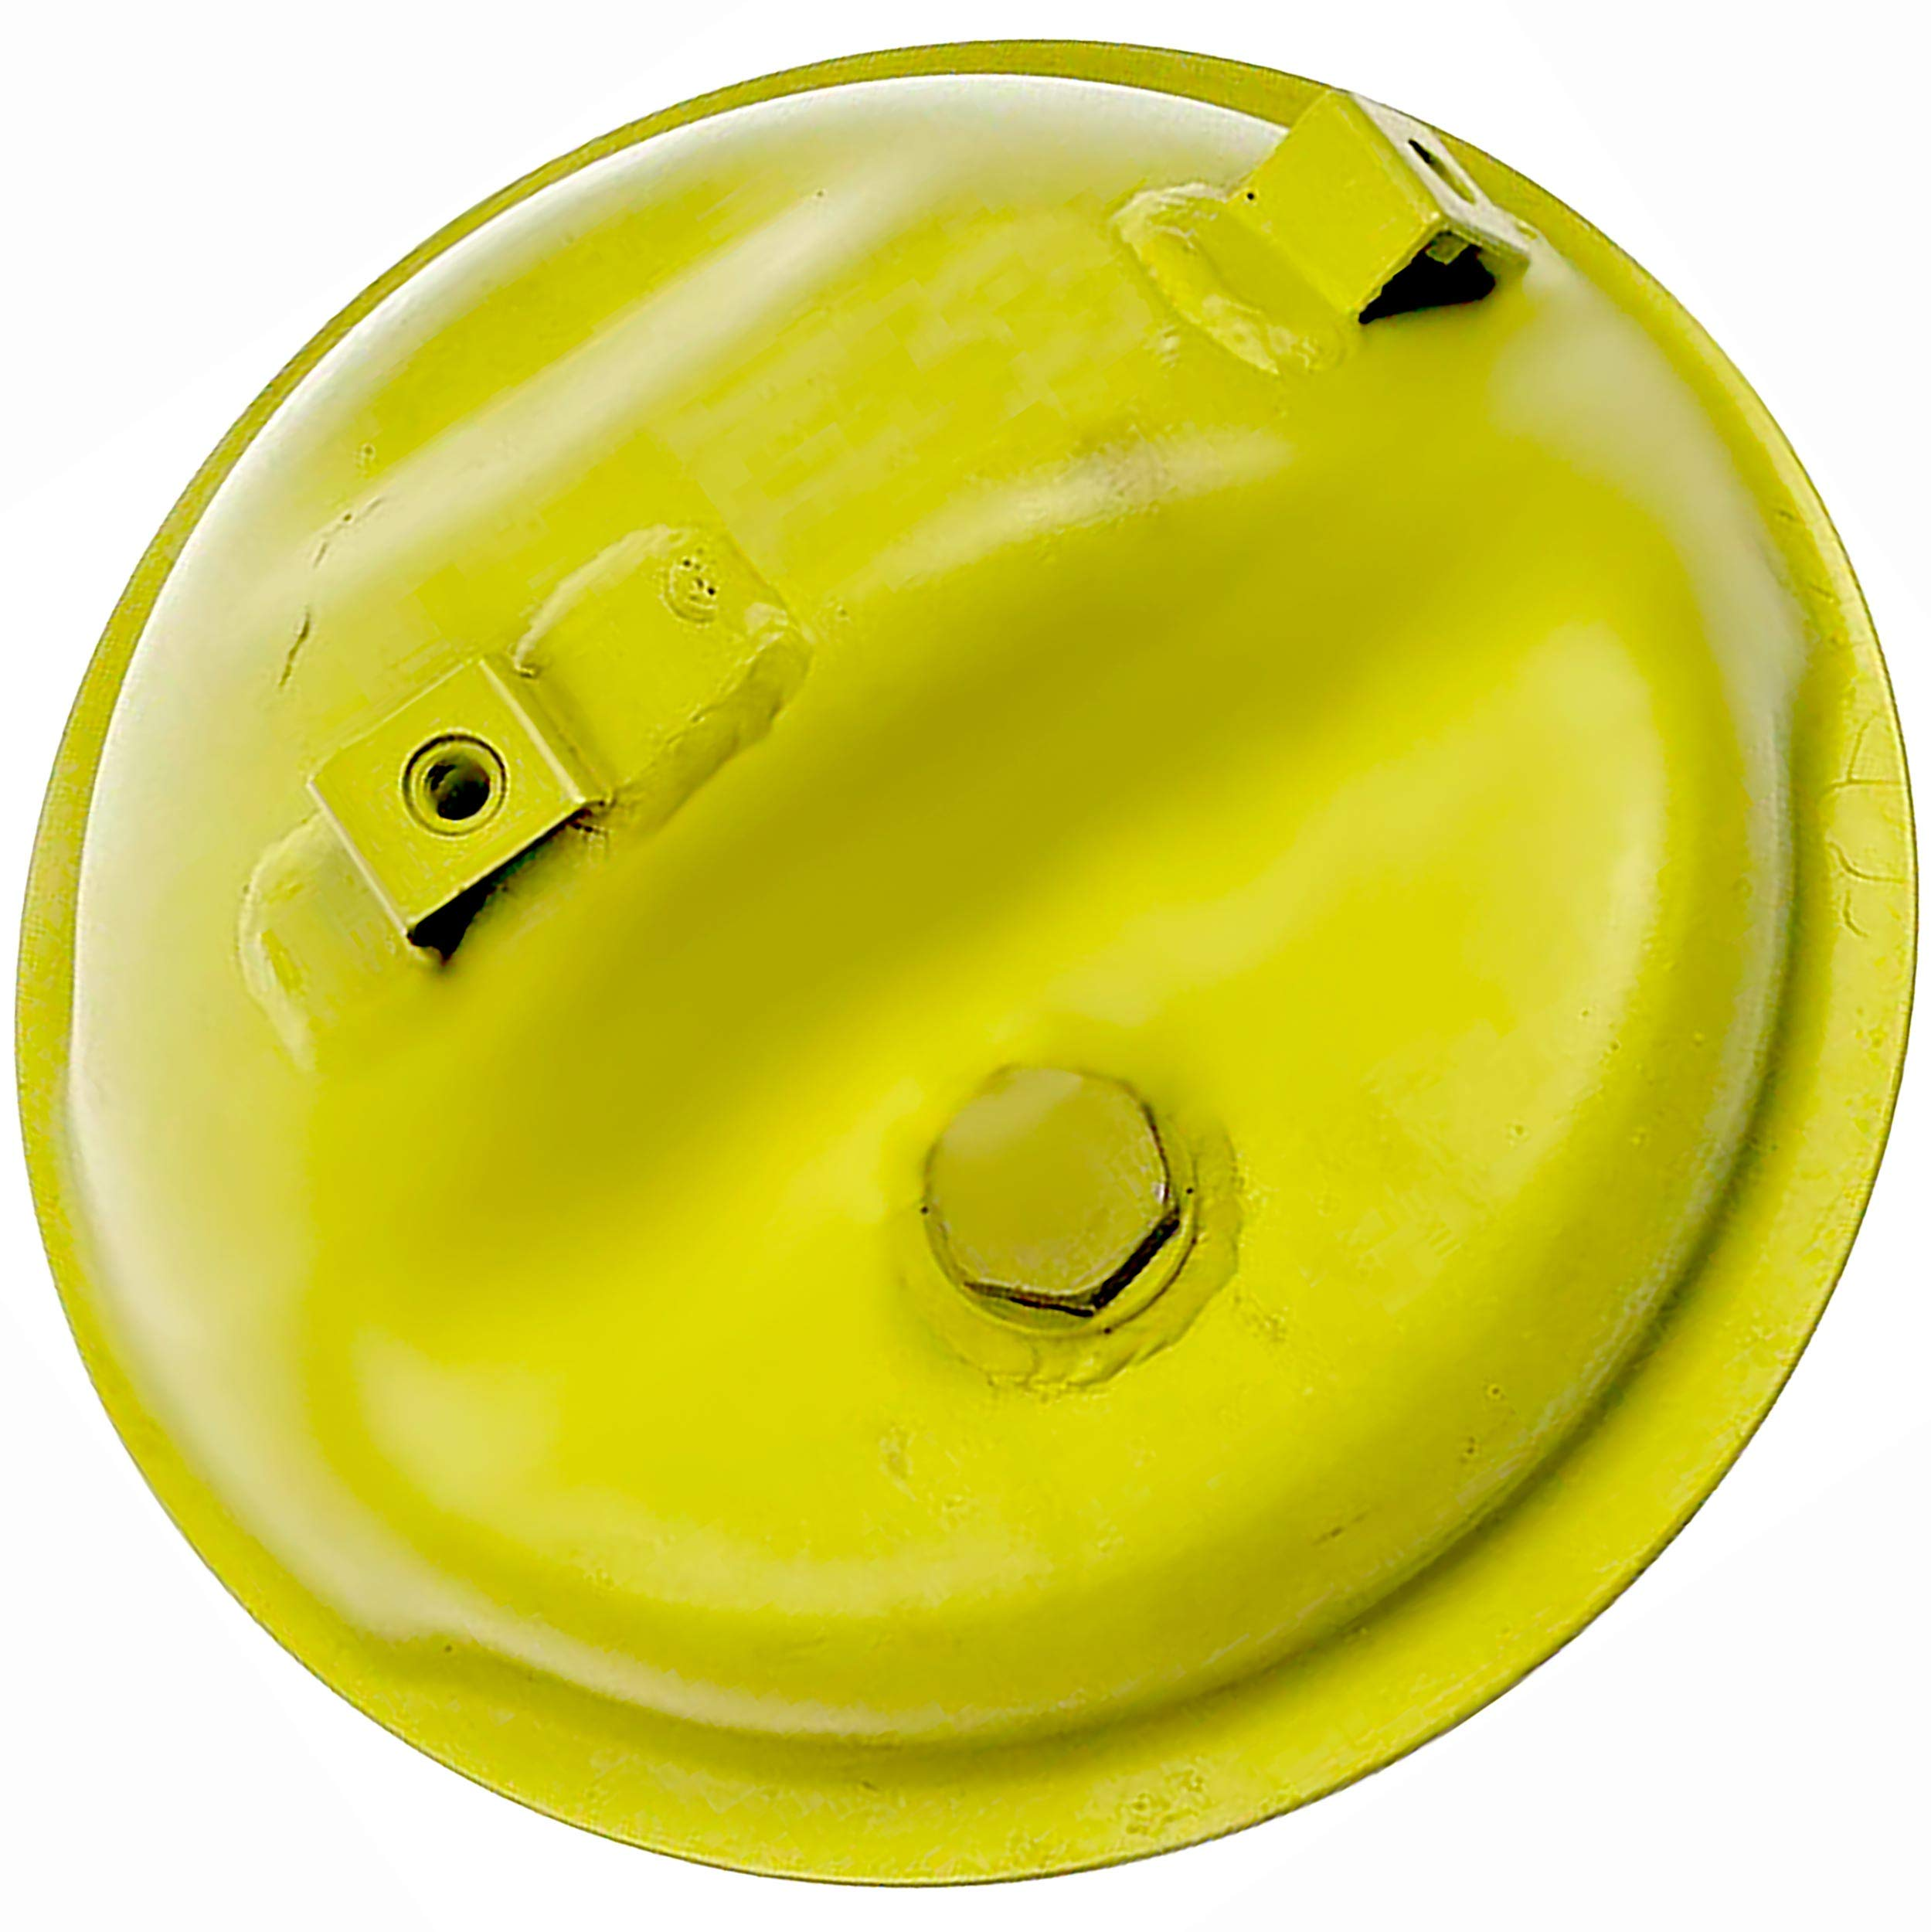 APDTY 141382 Rear Differential Axle Housing Cover w/Drain Fill Hole Fits 1996-2002 Toyota 4Runner or 1995-2004 Toyota Tacoma (Repairs 42110-35680, 42110-35681, 42110-35700, 42110-35701, 42110-35710) by APDTY (Image #1)